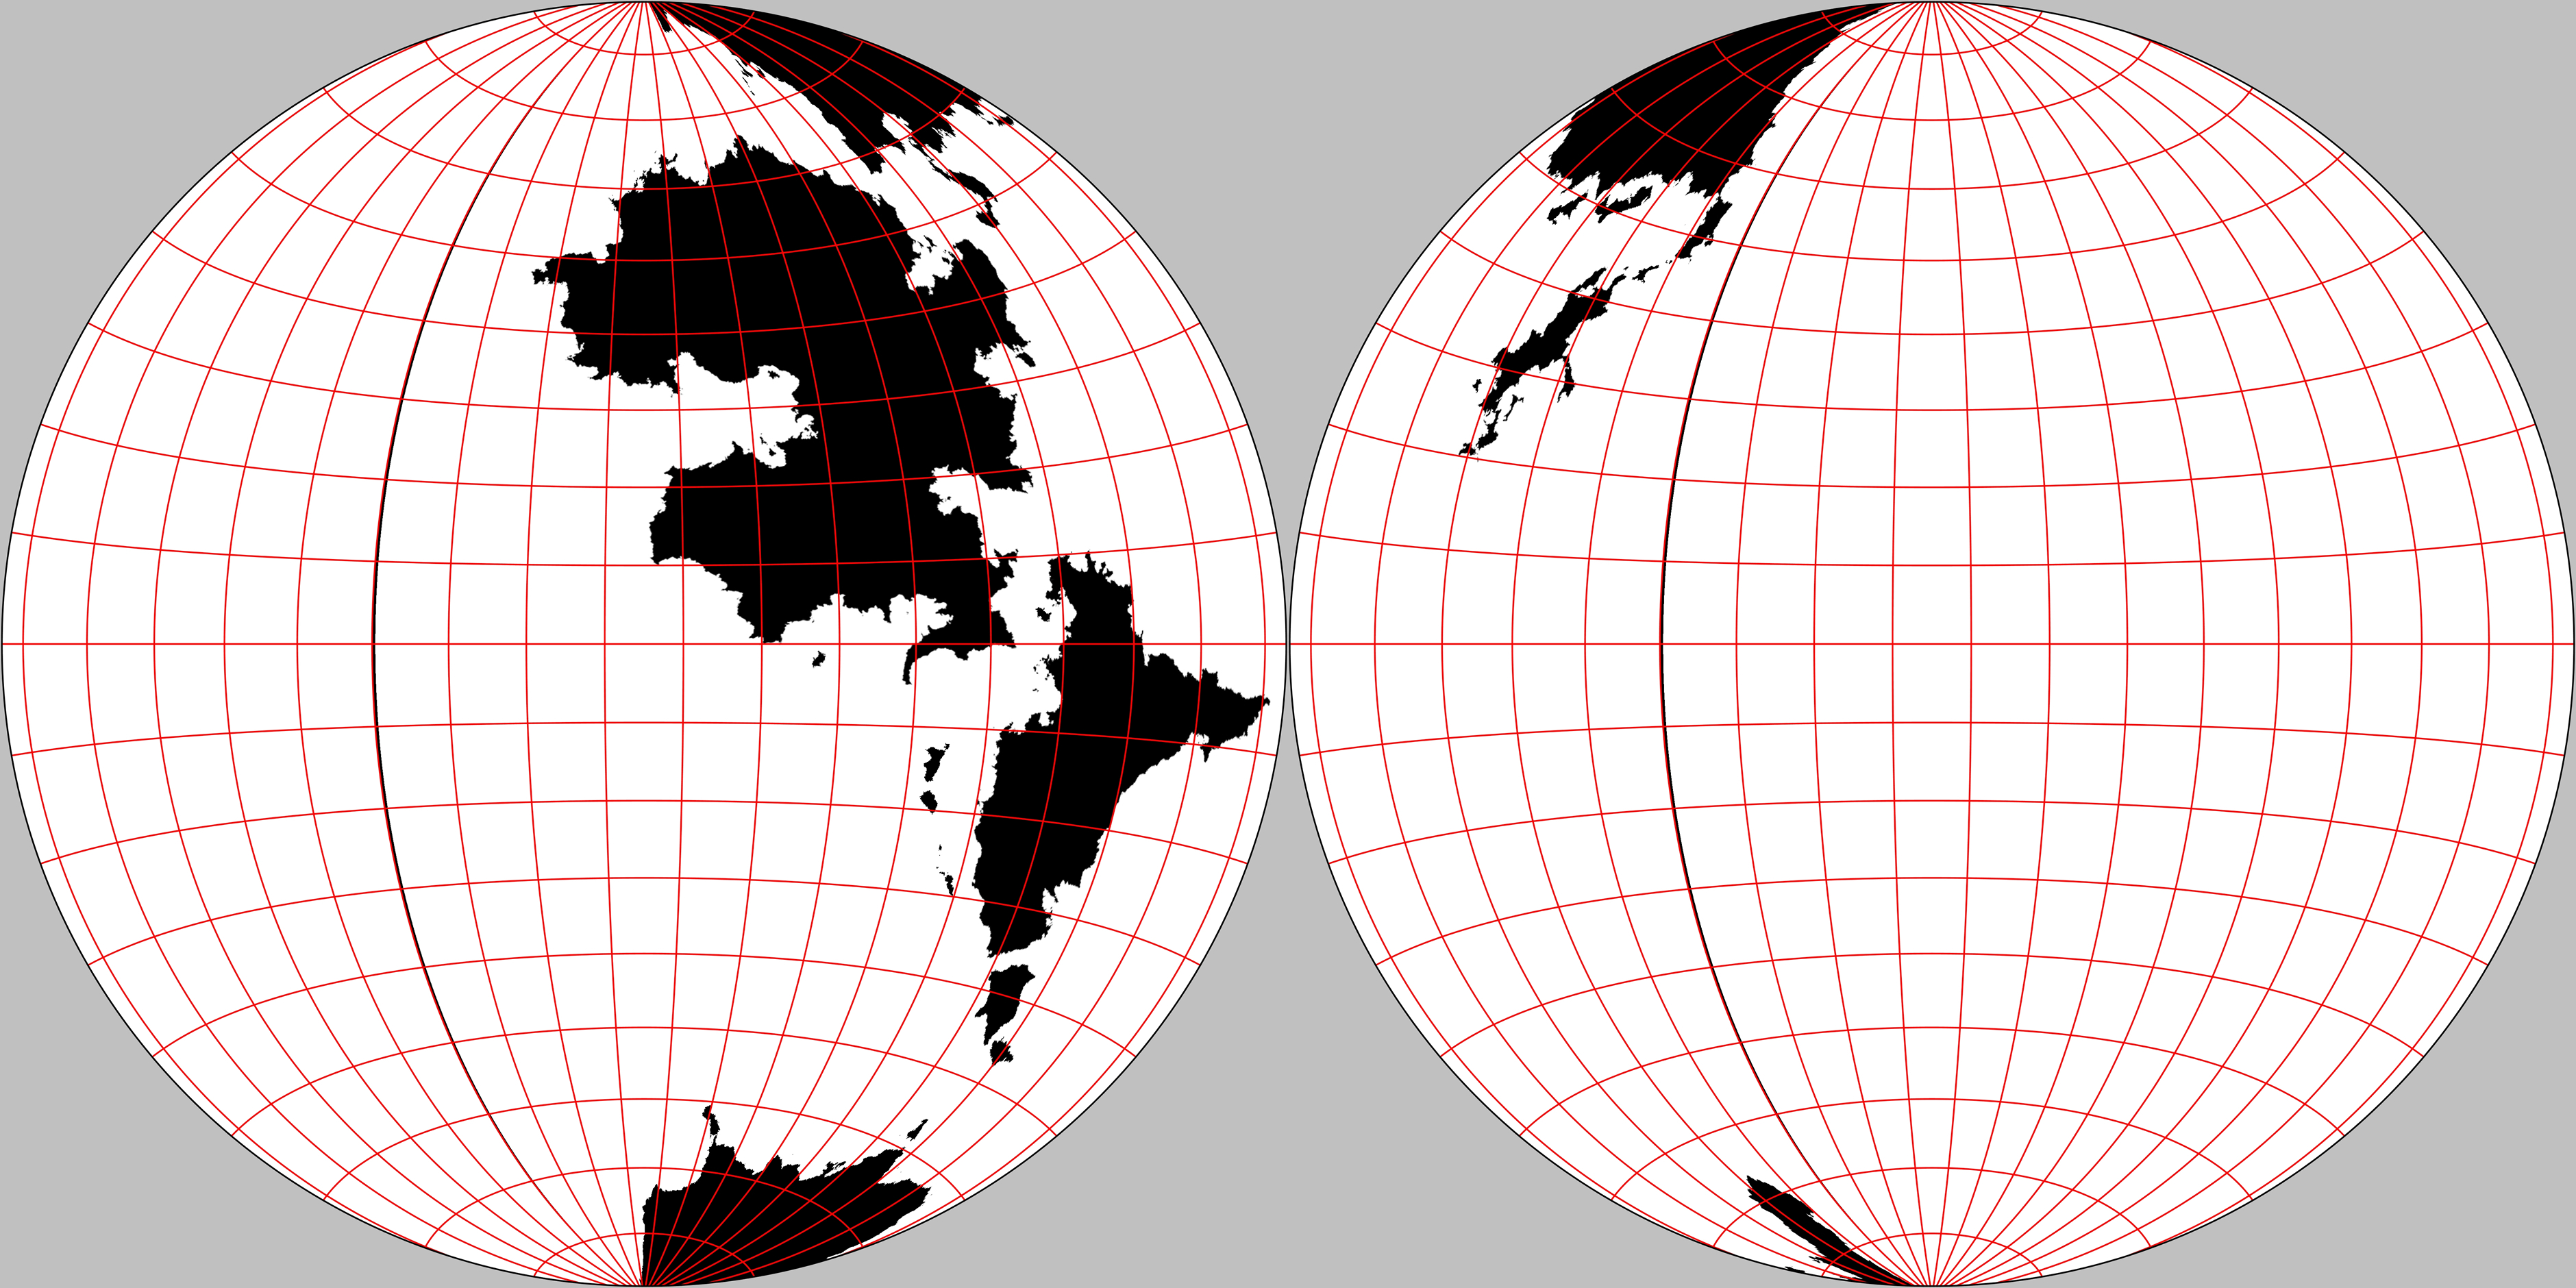 Western and eastern hemispheres of The Known World. Gott-Mugnolo Azimuthal projection.